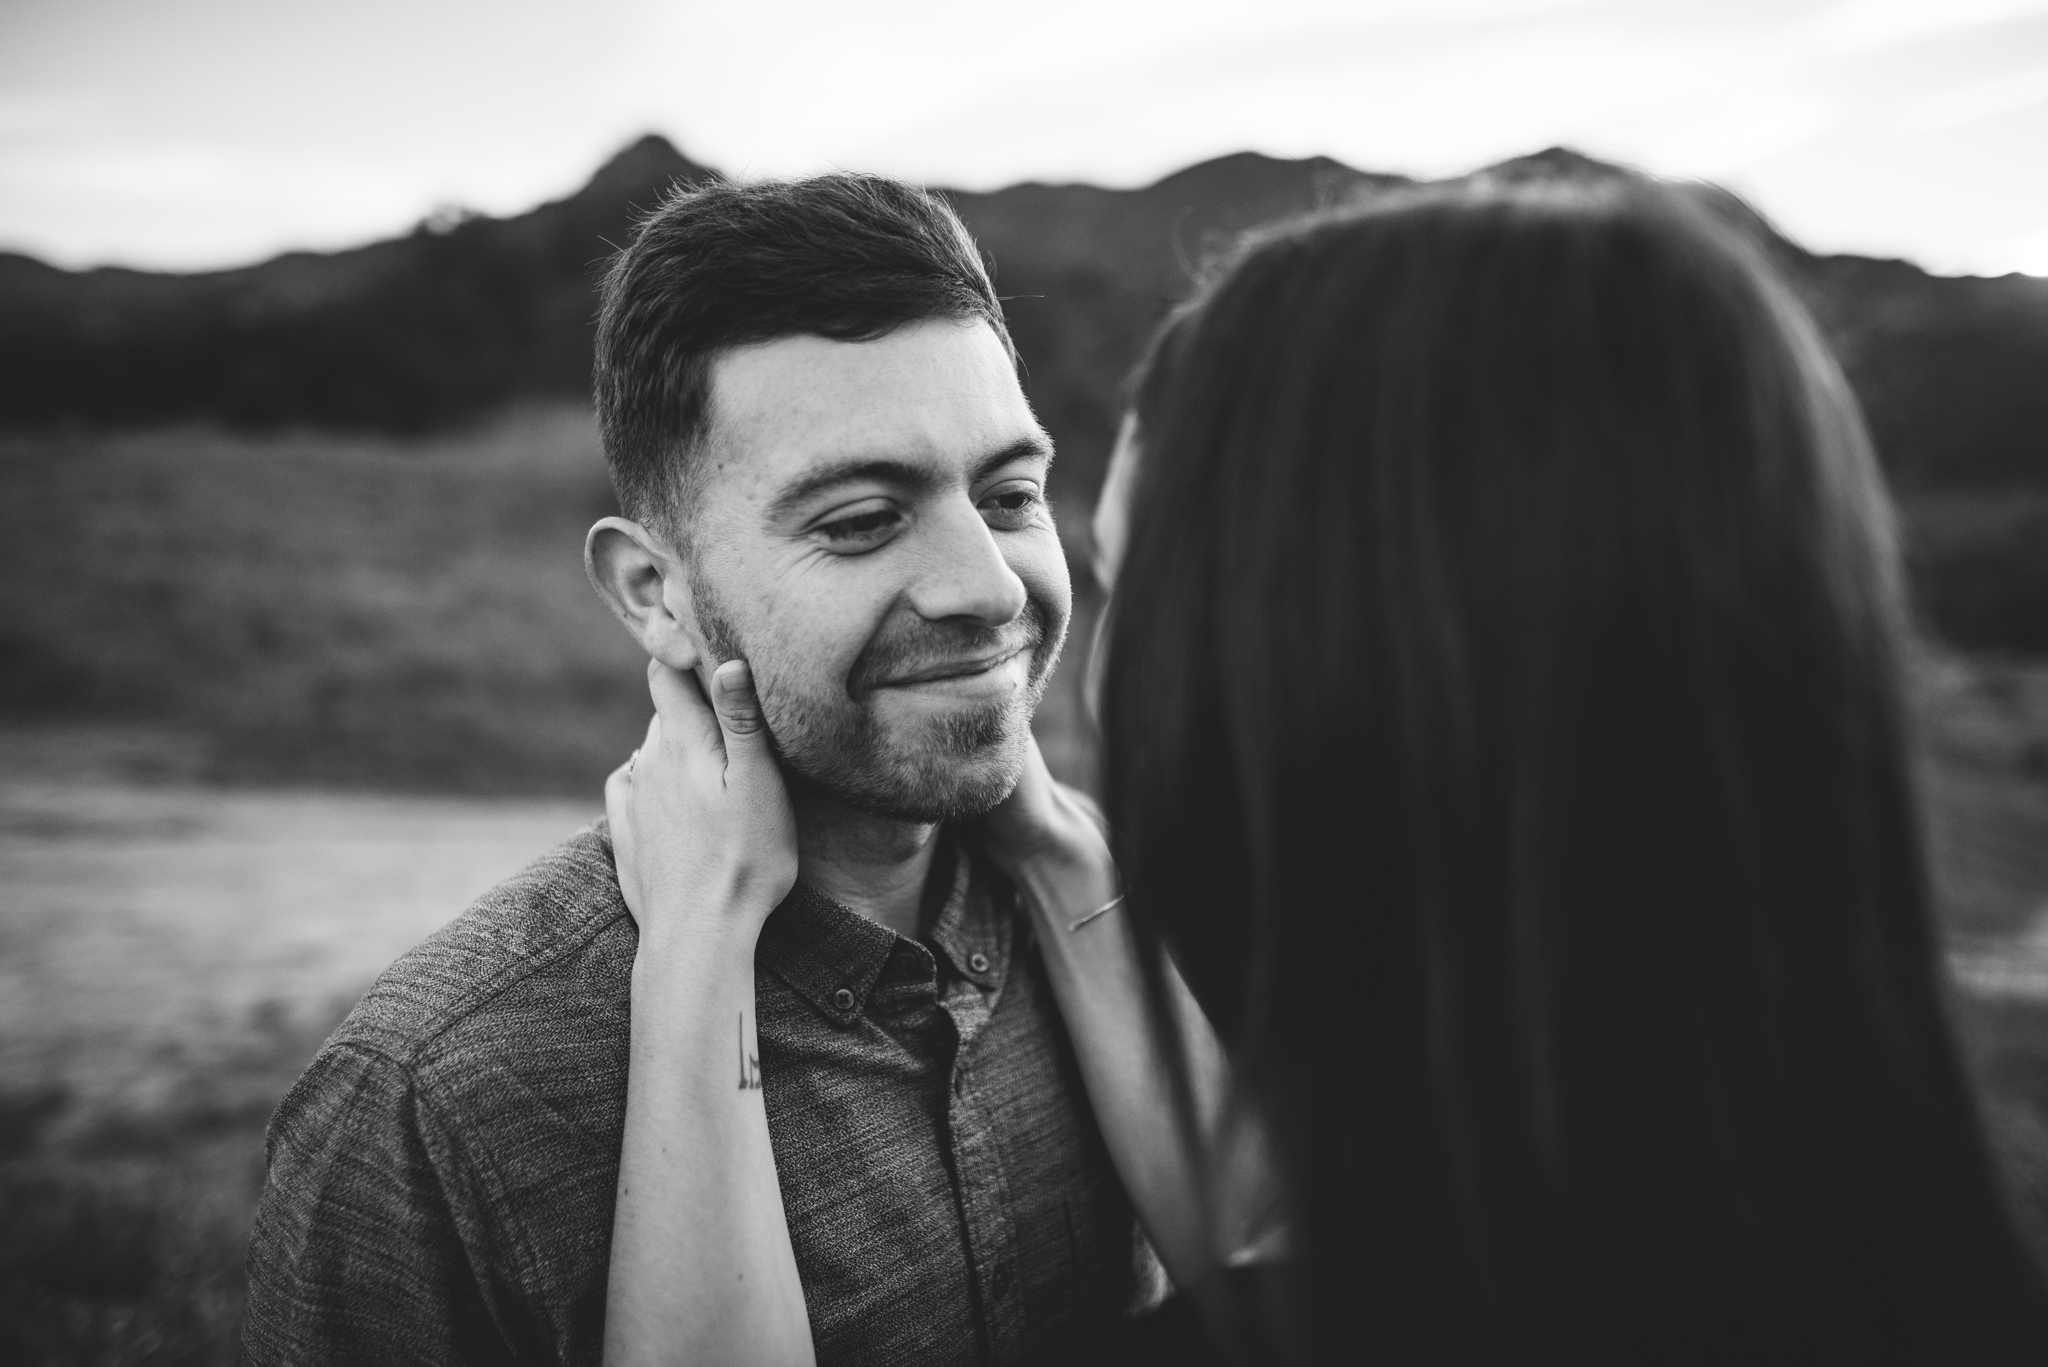 ©Isaiah-&-Taylor-Photography---Malibu-Field-Engagement,-Southern-California-Wedding-Photographer-017.jpg